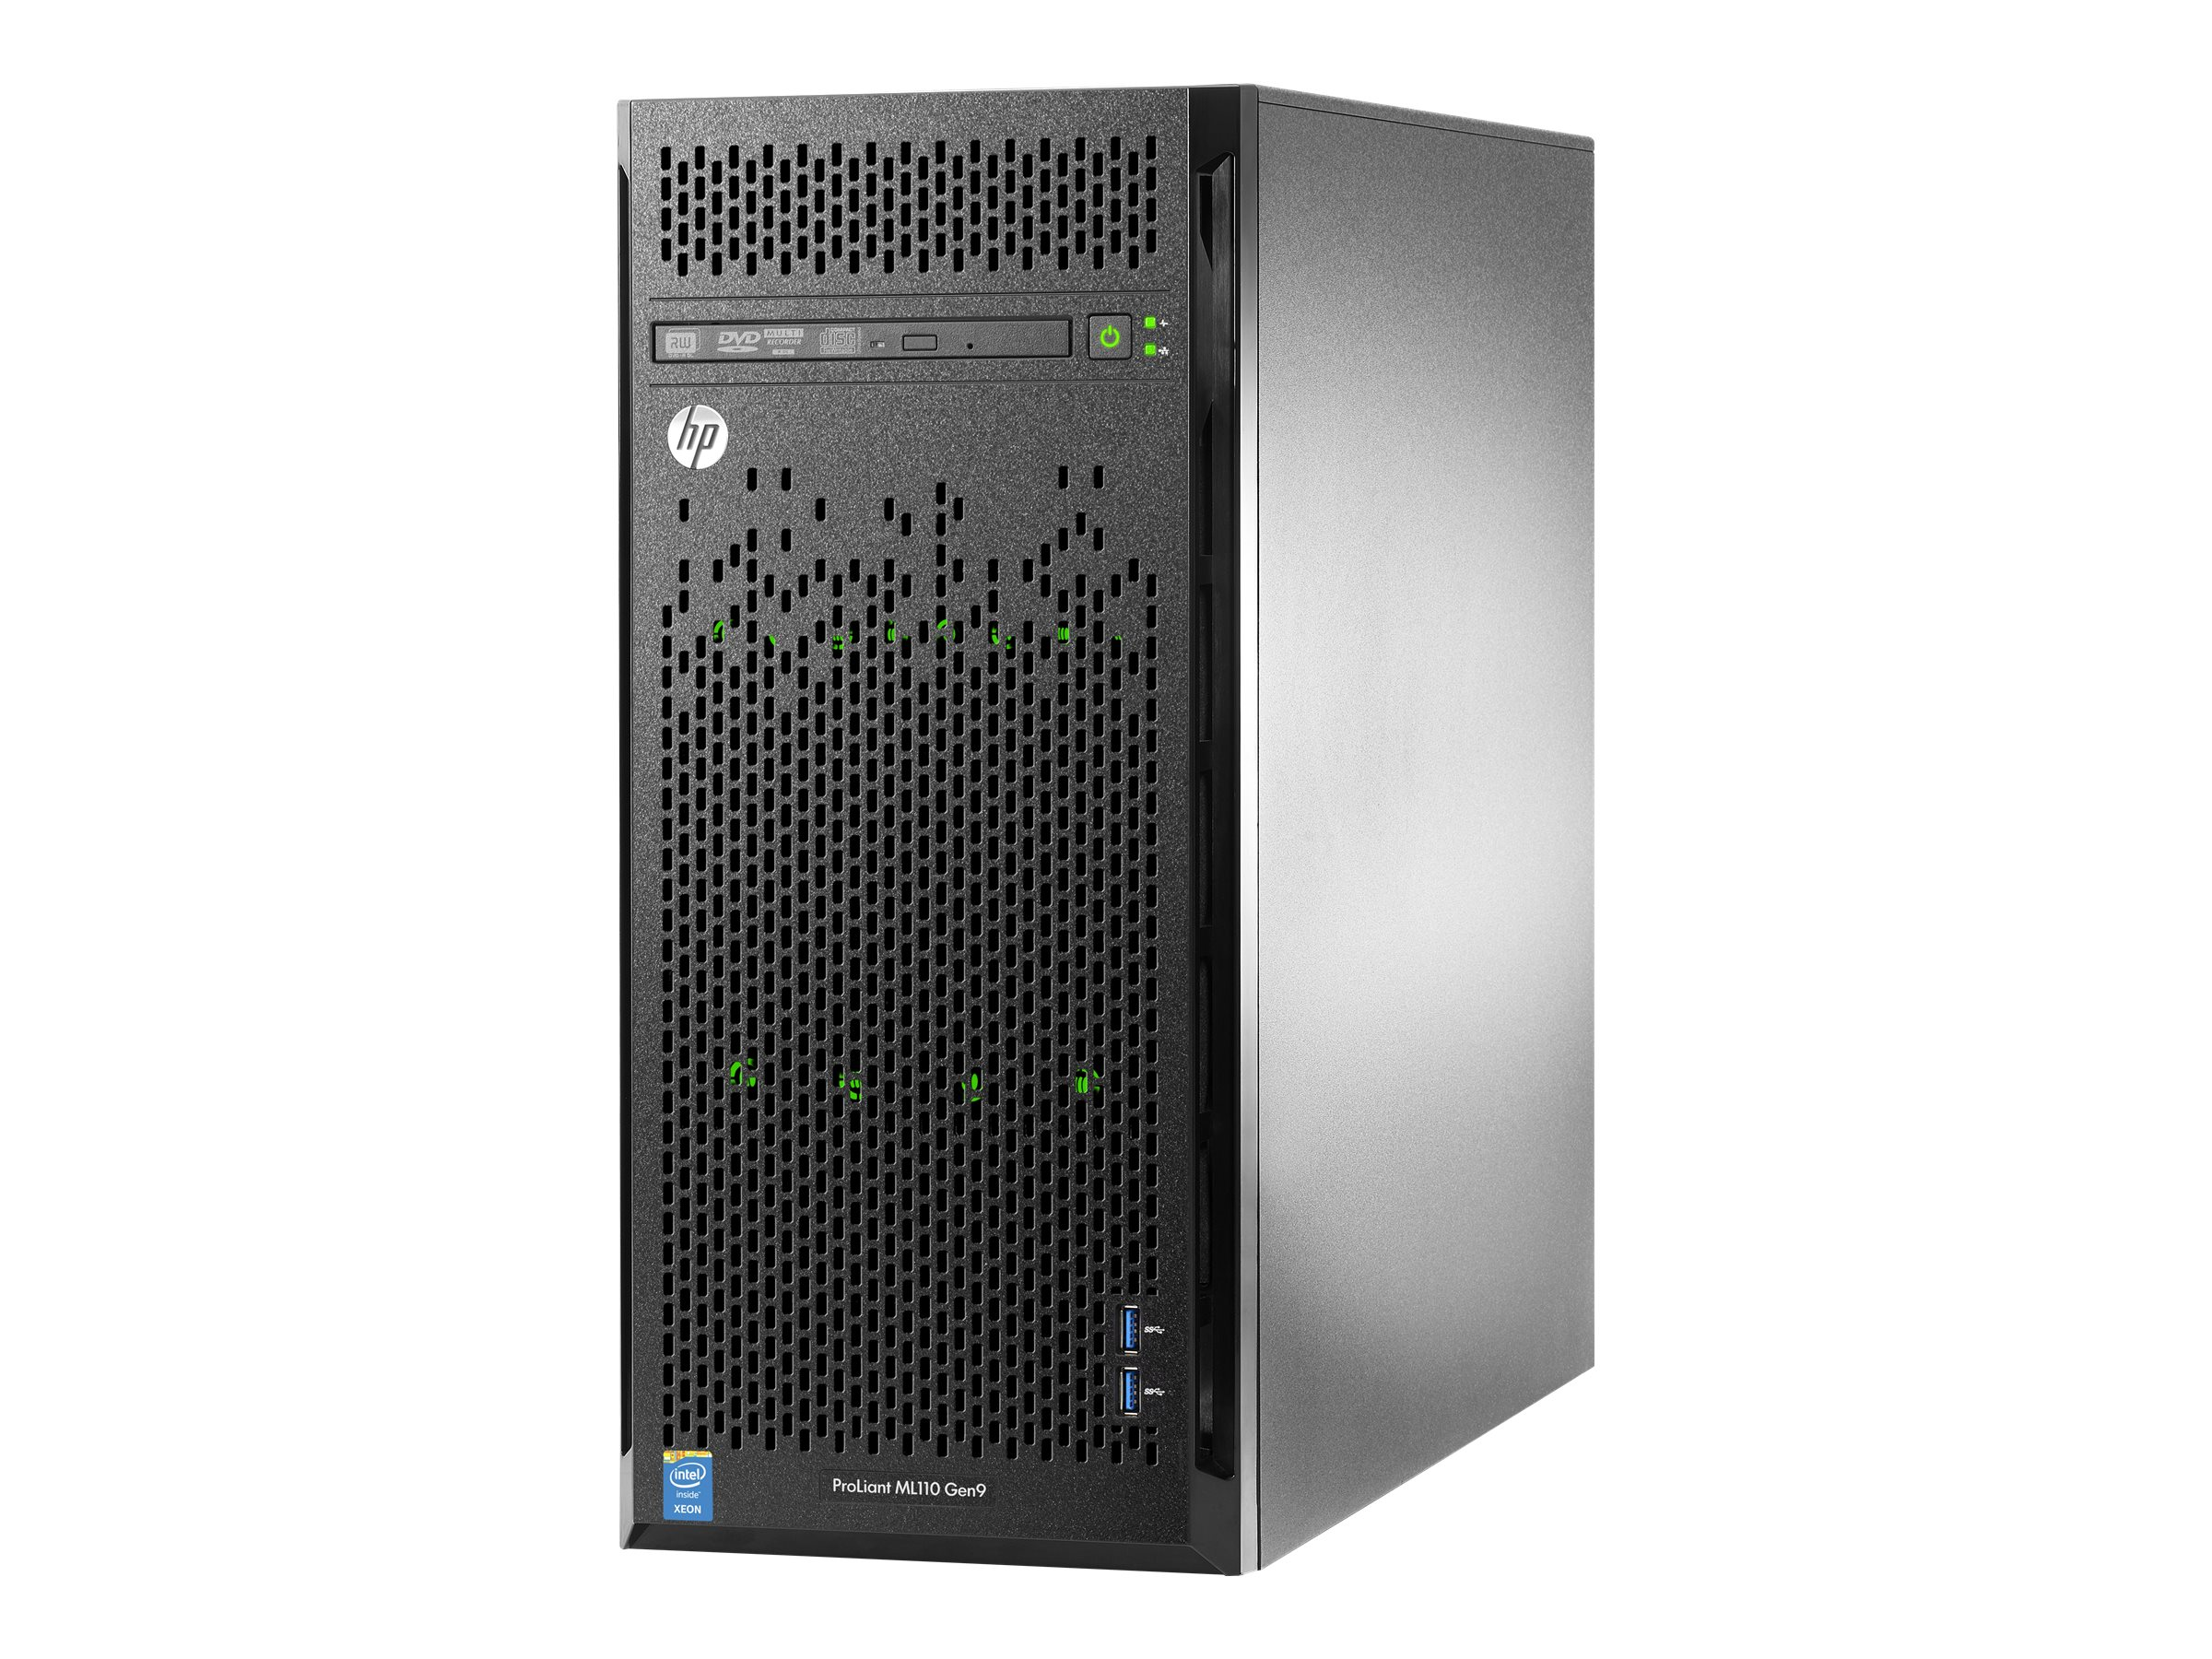 HPE ProLiant ML110 Gen9 Intel 1.7GHz Xeon